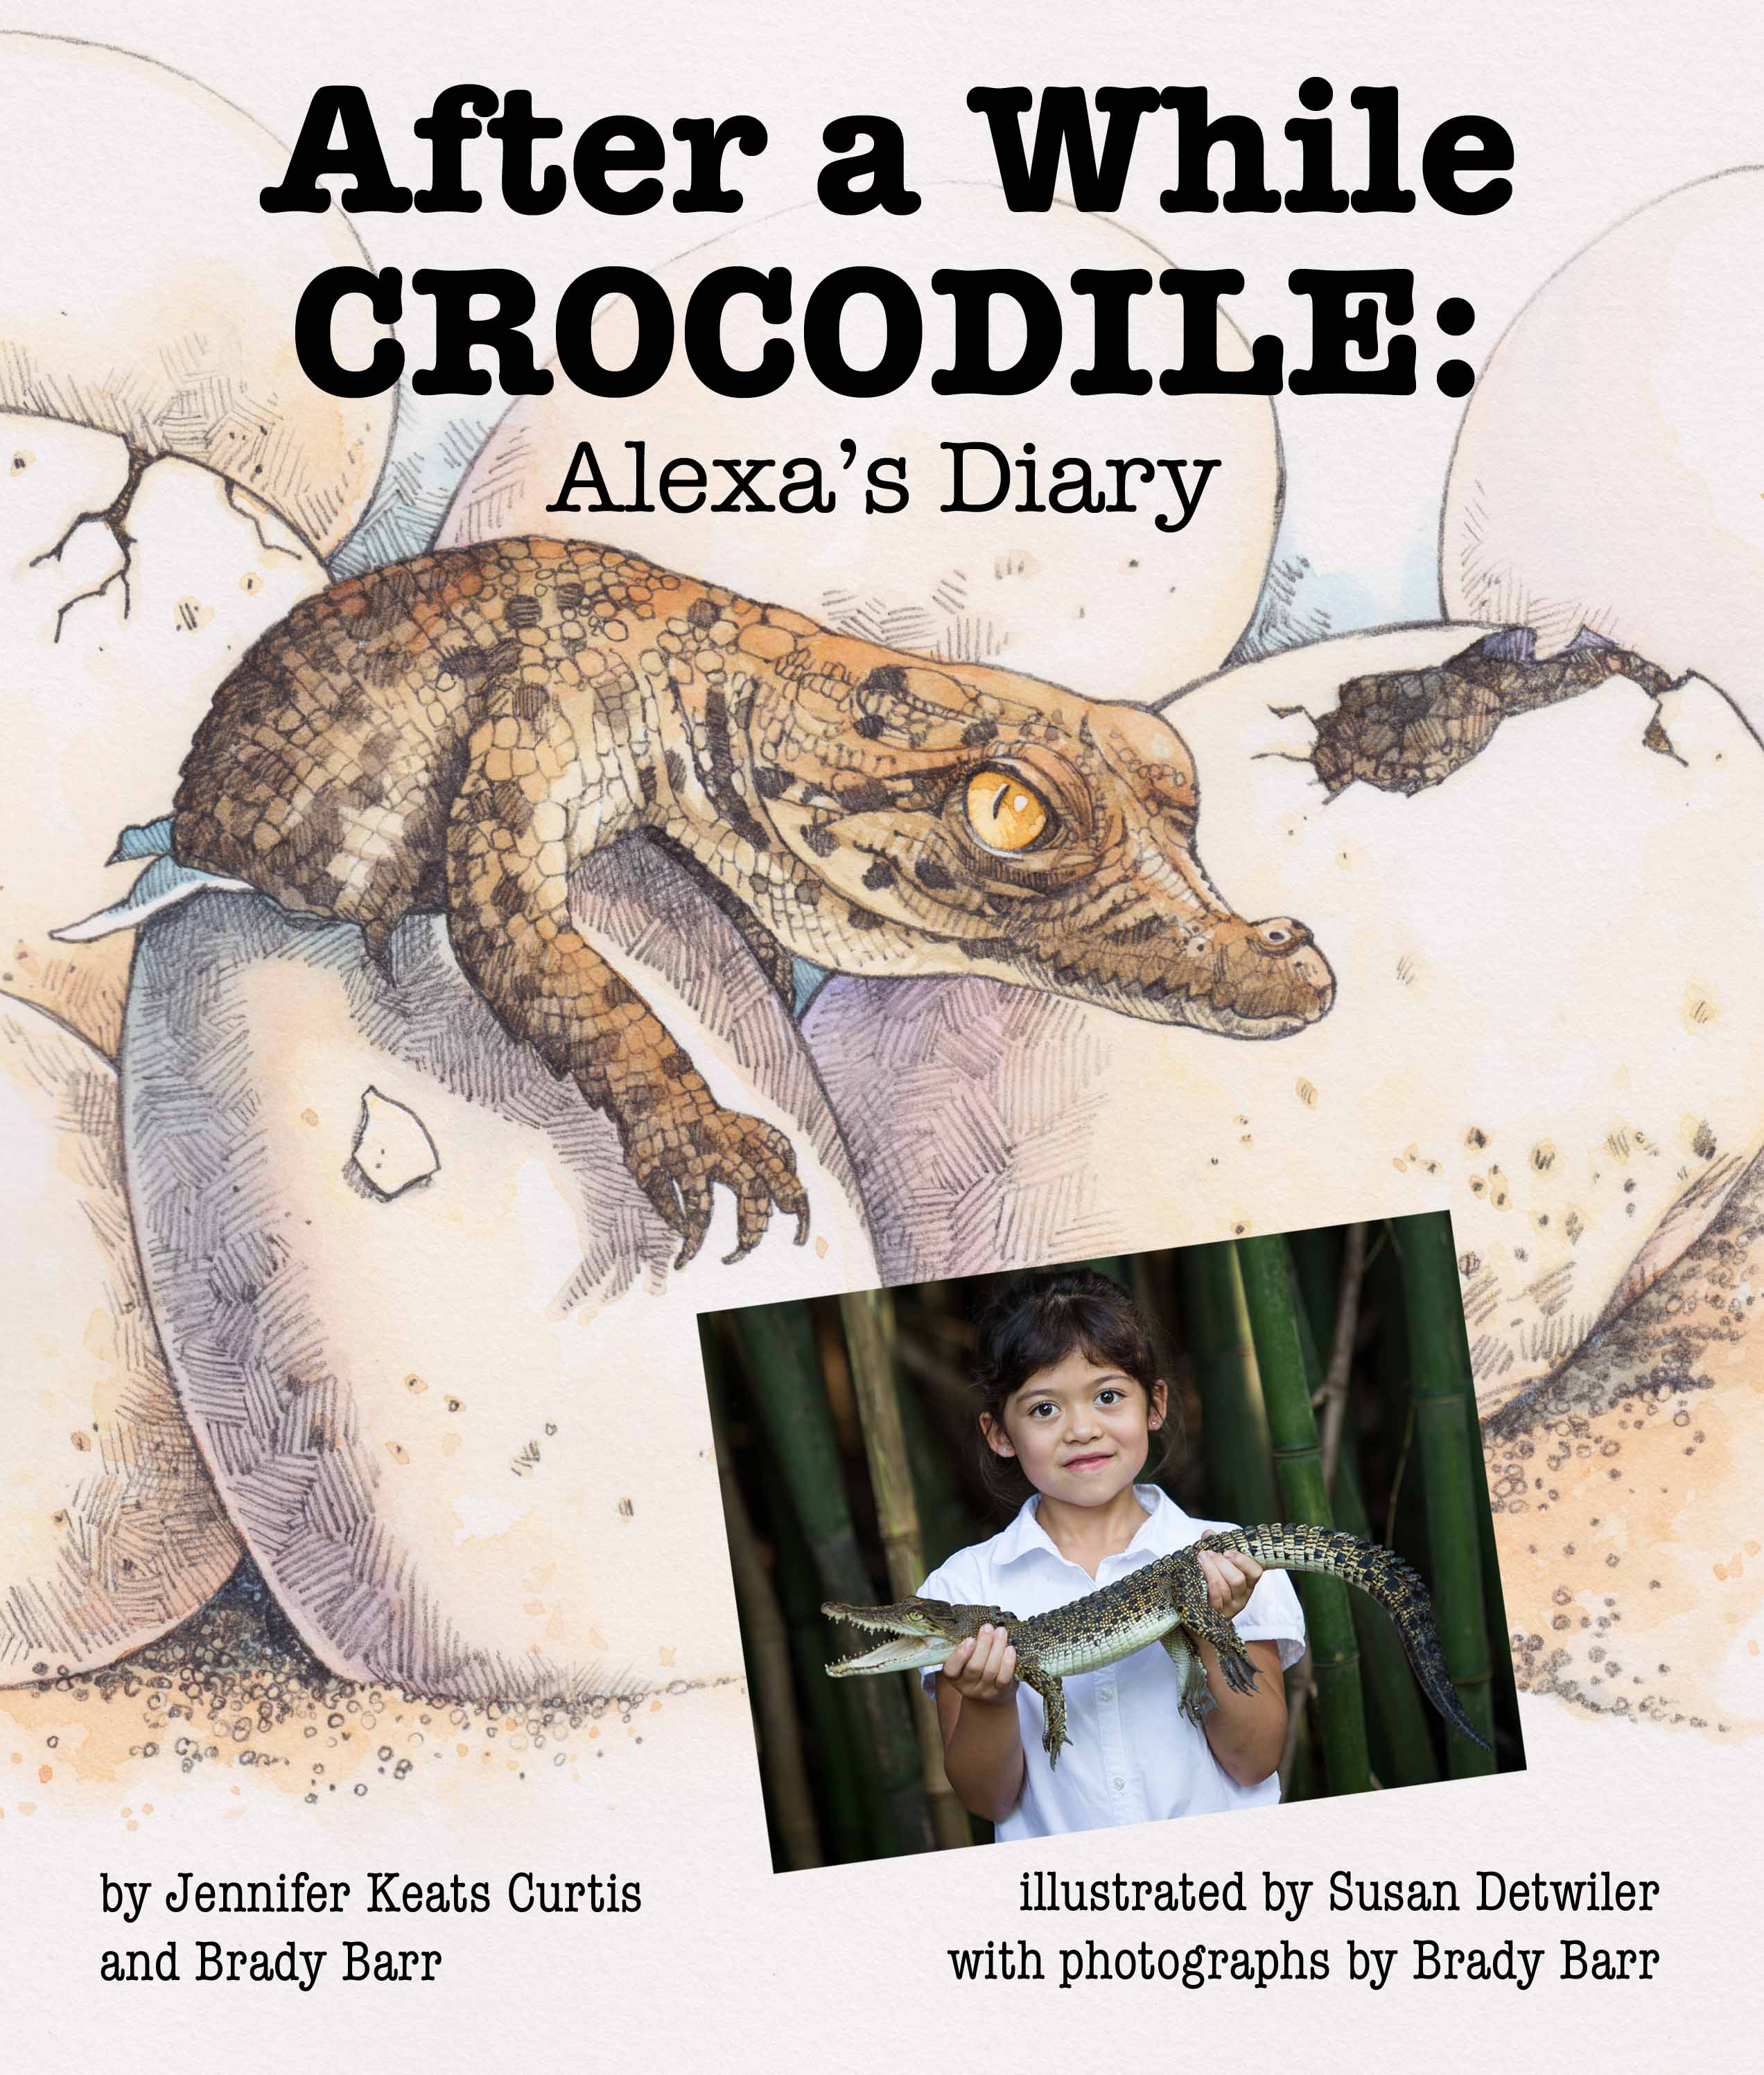 Crocodile_cover_mock-up